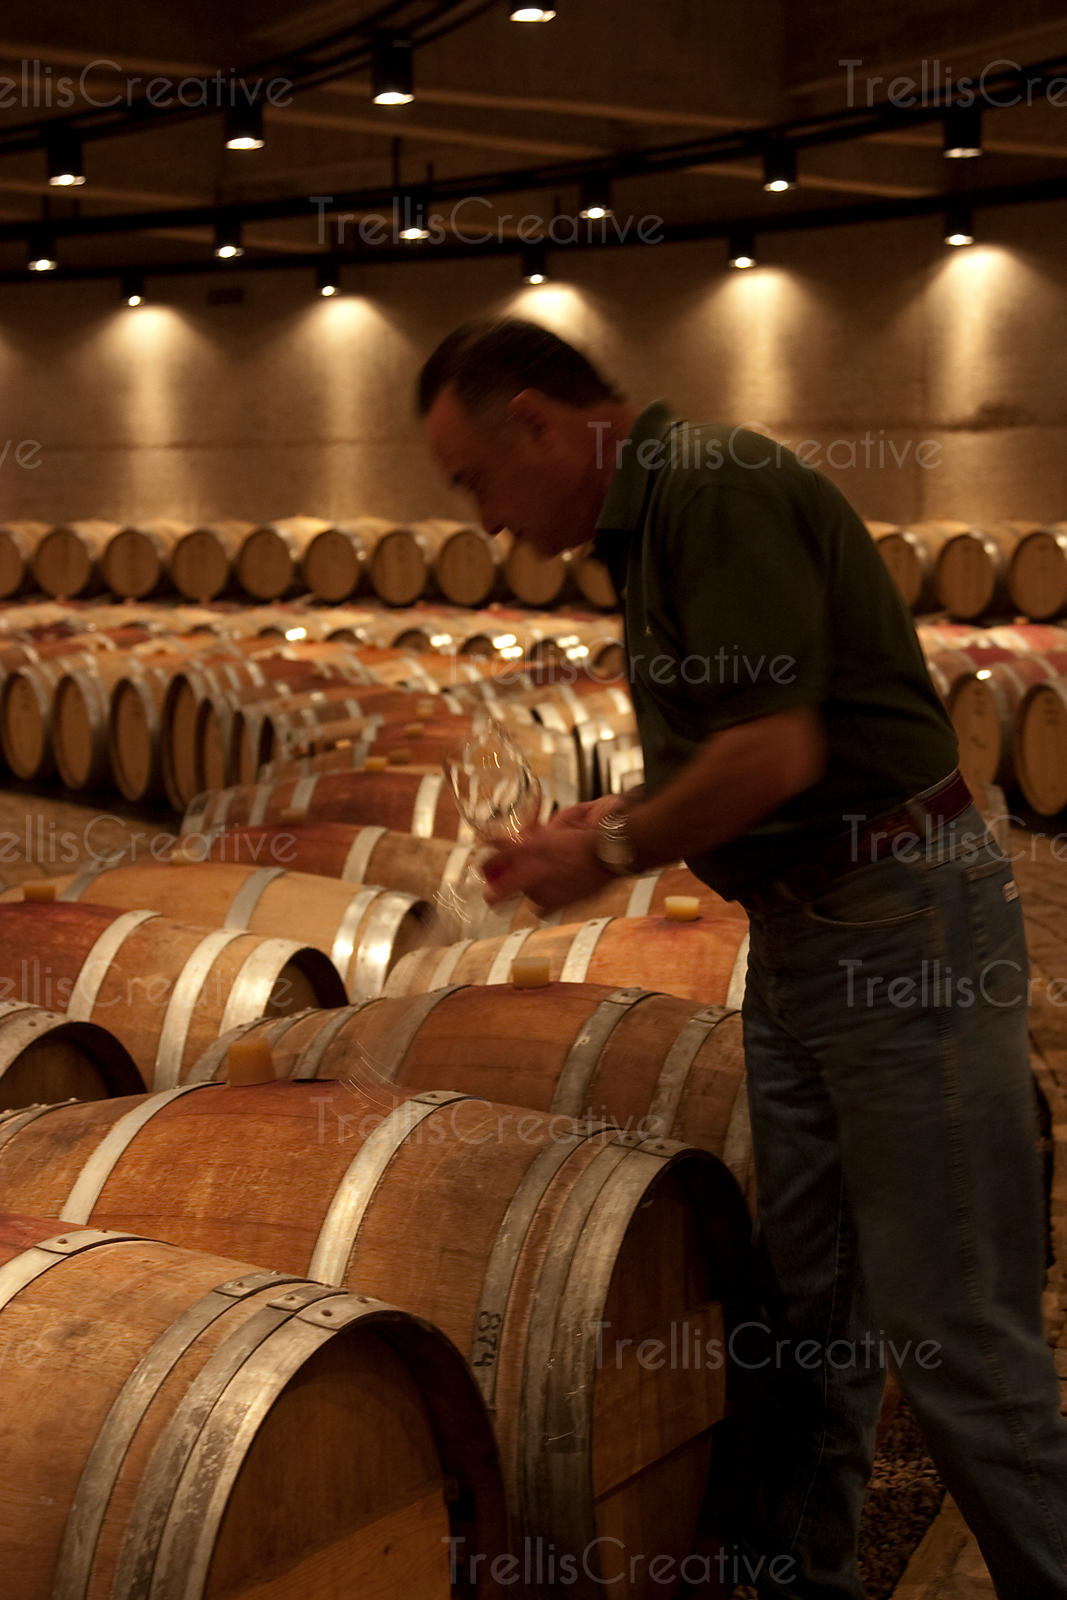 A winemaker samples wine from the barrel in a wine cave